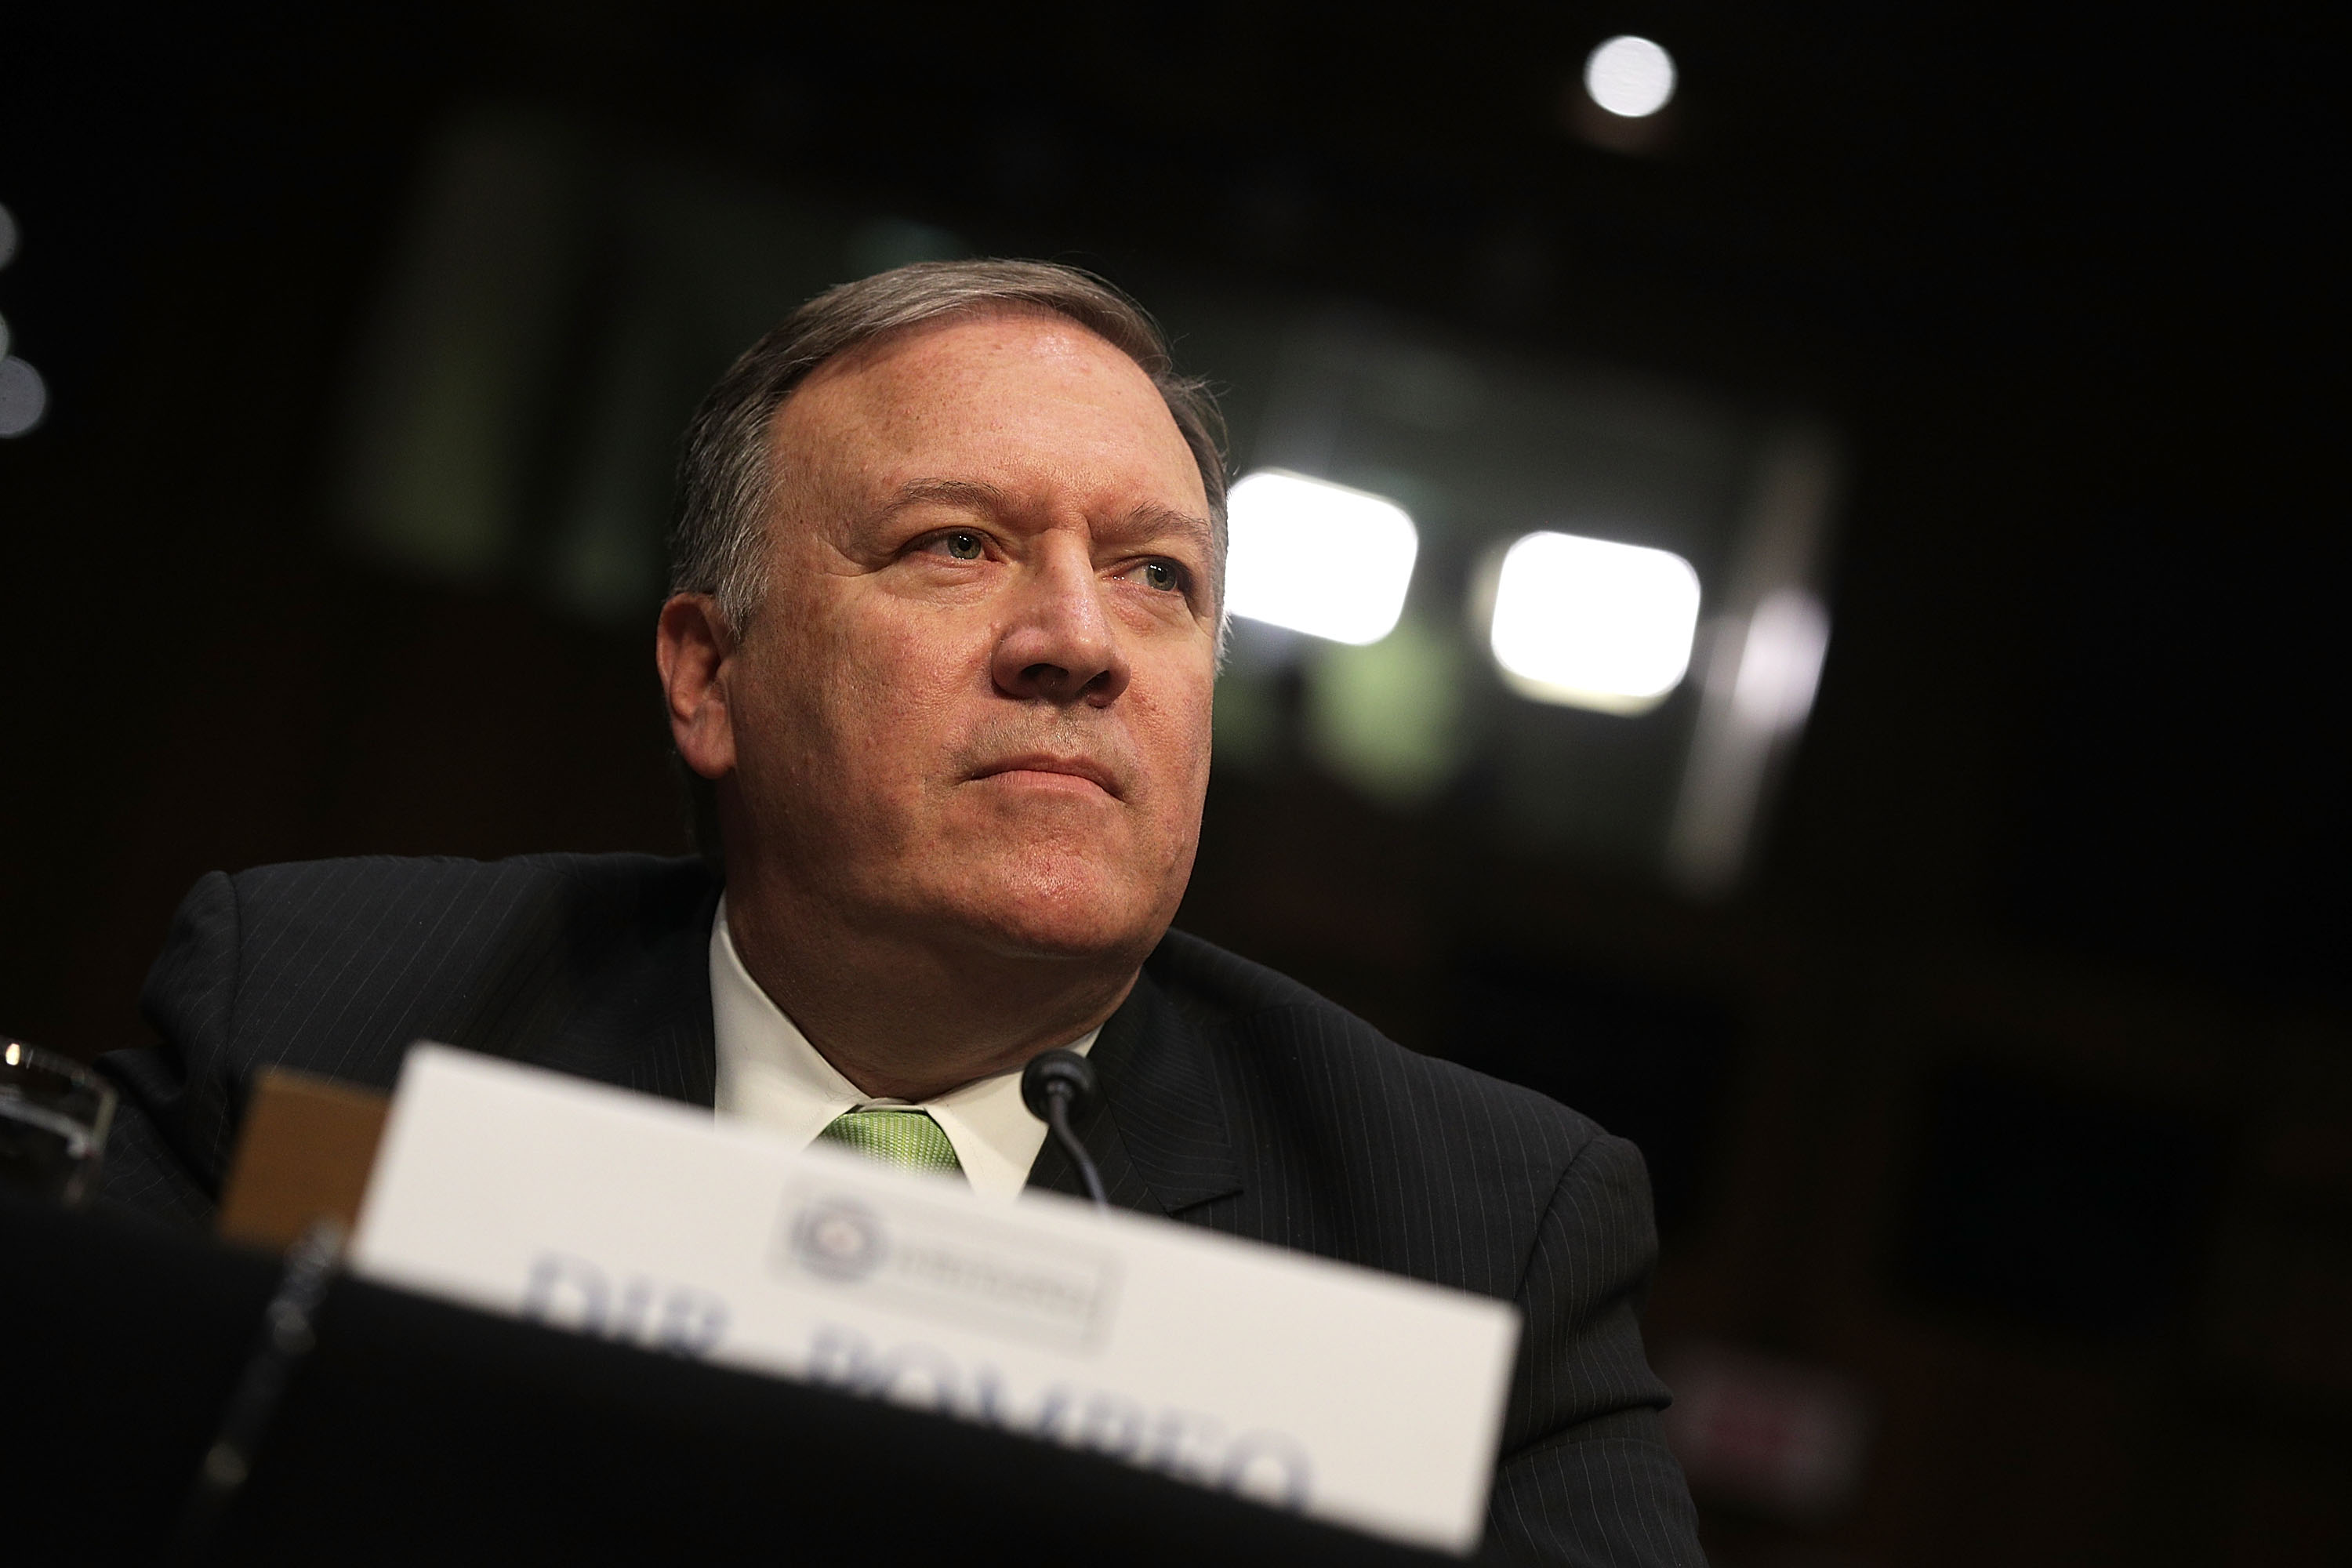 Central Intelligence Agency Director Mike Pompeo testifies before the Senate Intelligence Committee with the other heads of the U.S. intelligence agencies in the Hart Senate Office Building on Capitol Hill May 11, 2017 in Washington, D.C.